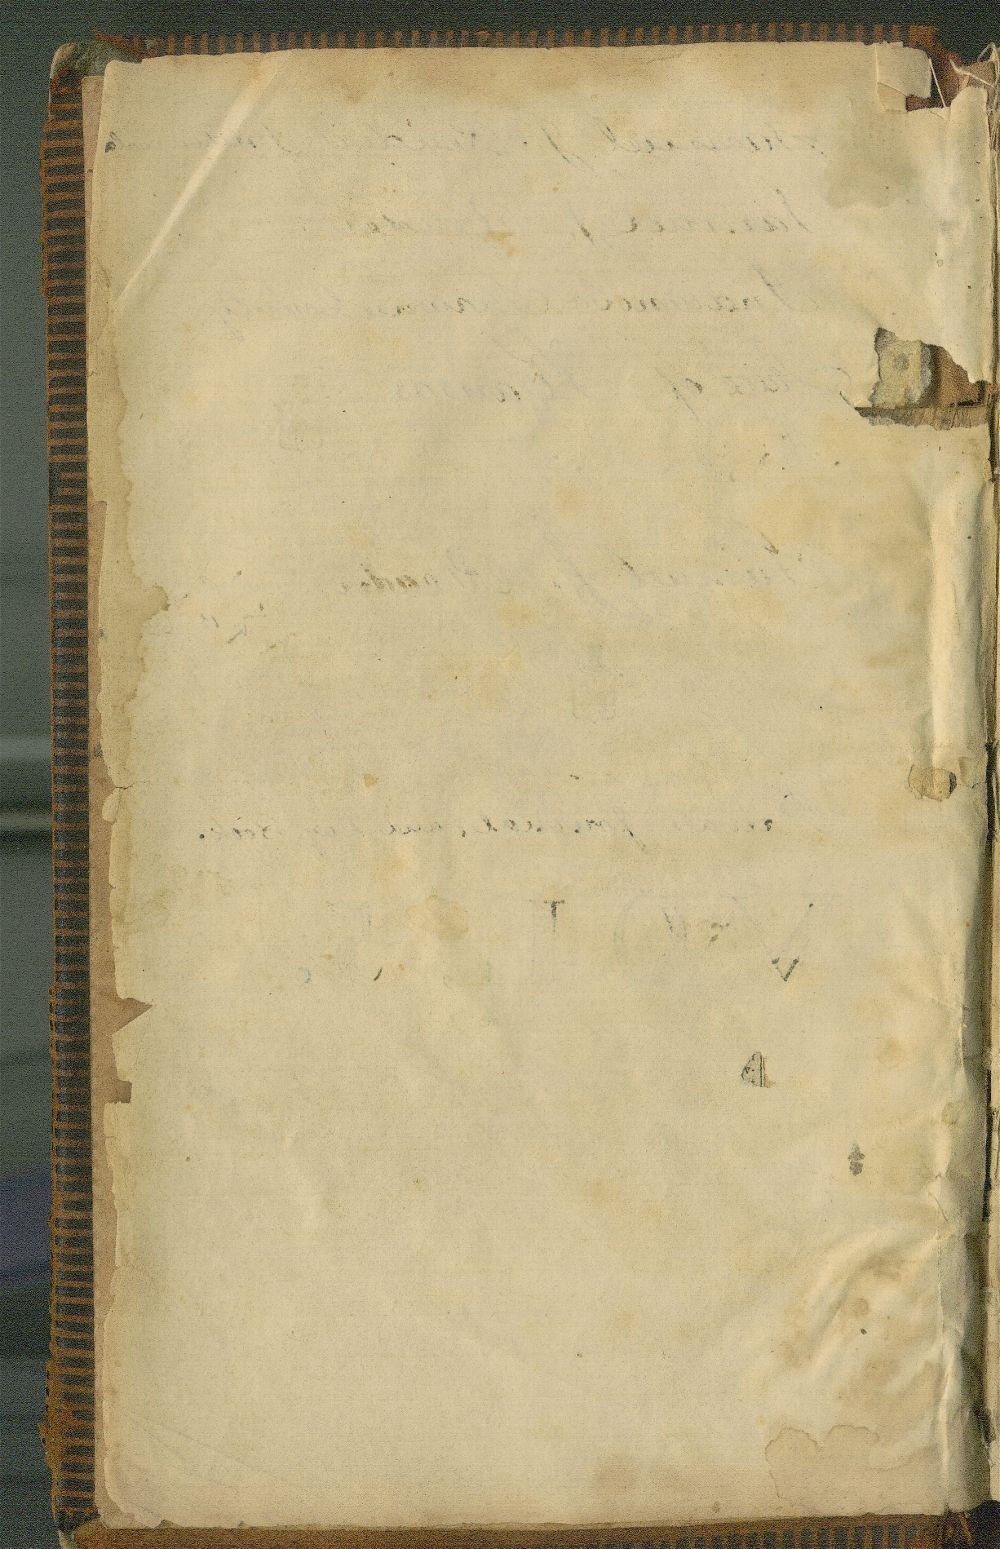 Samuel Reader's diary, volume 5 - blank page